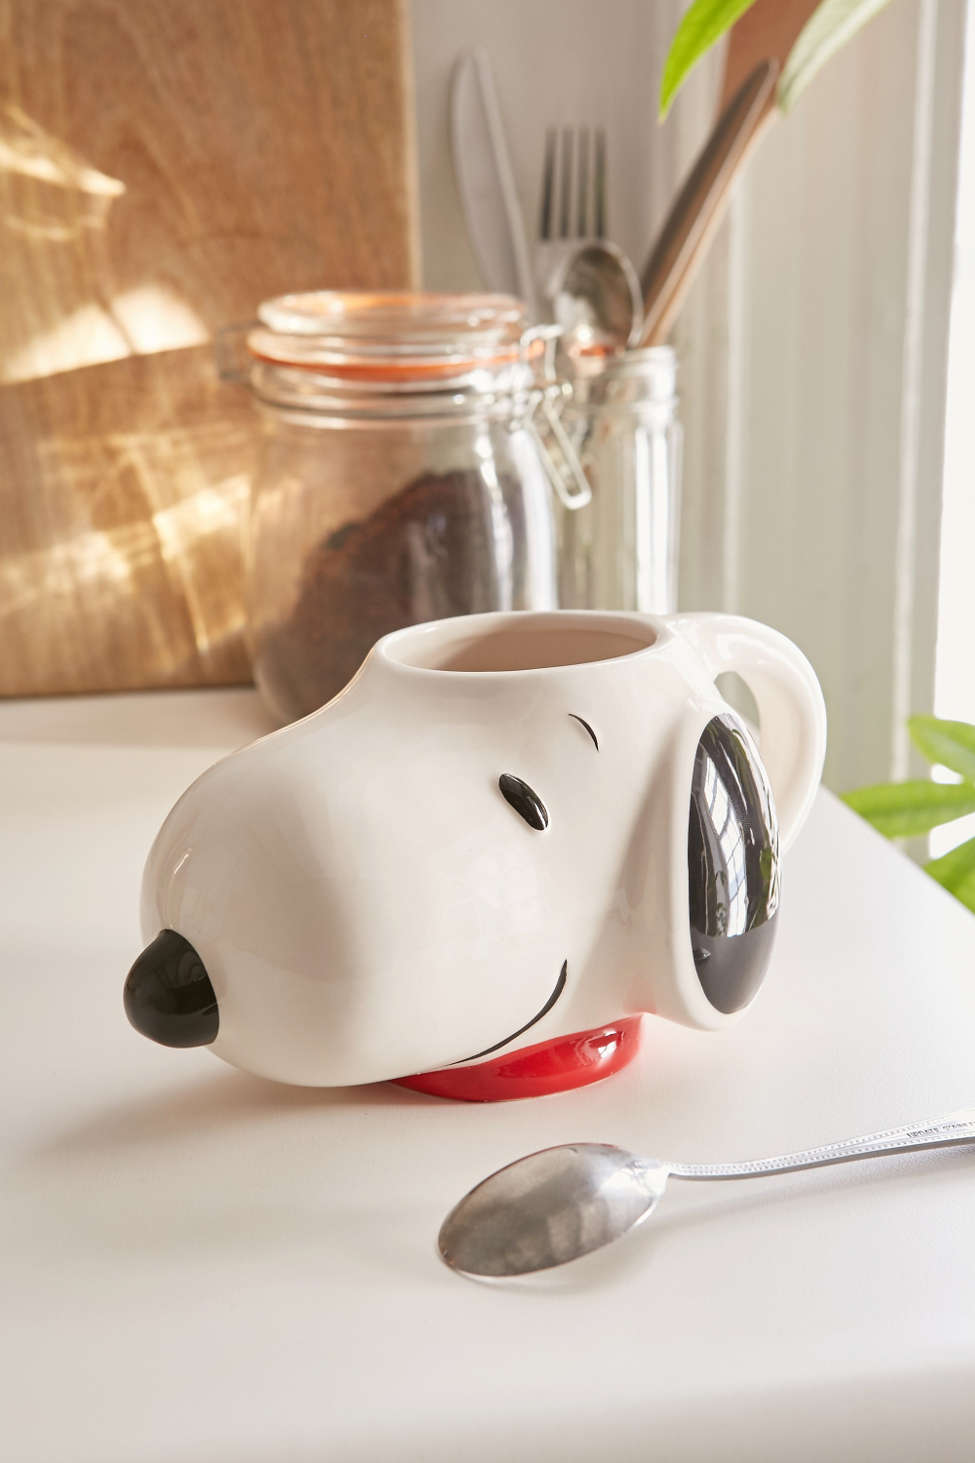 Darling Snoopy face mug